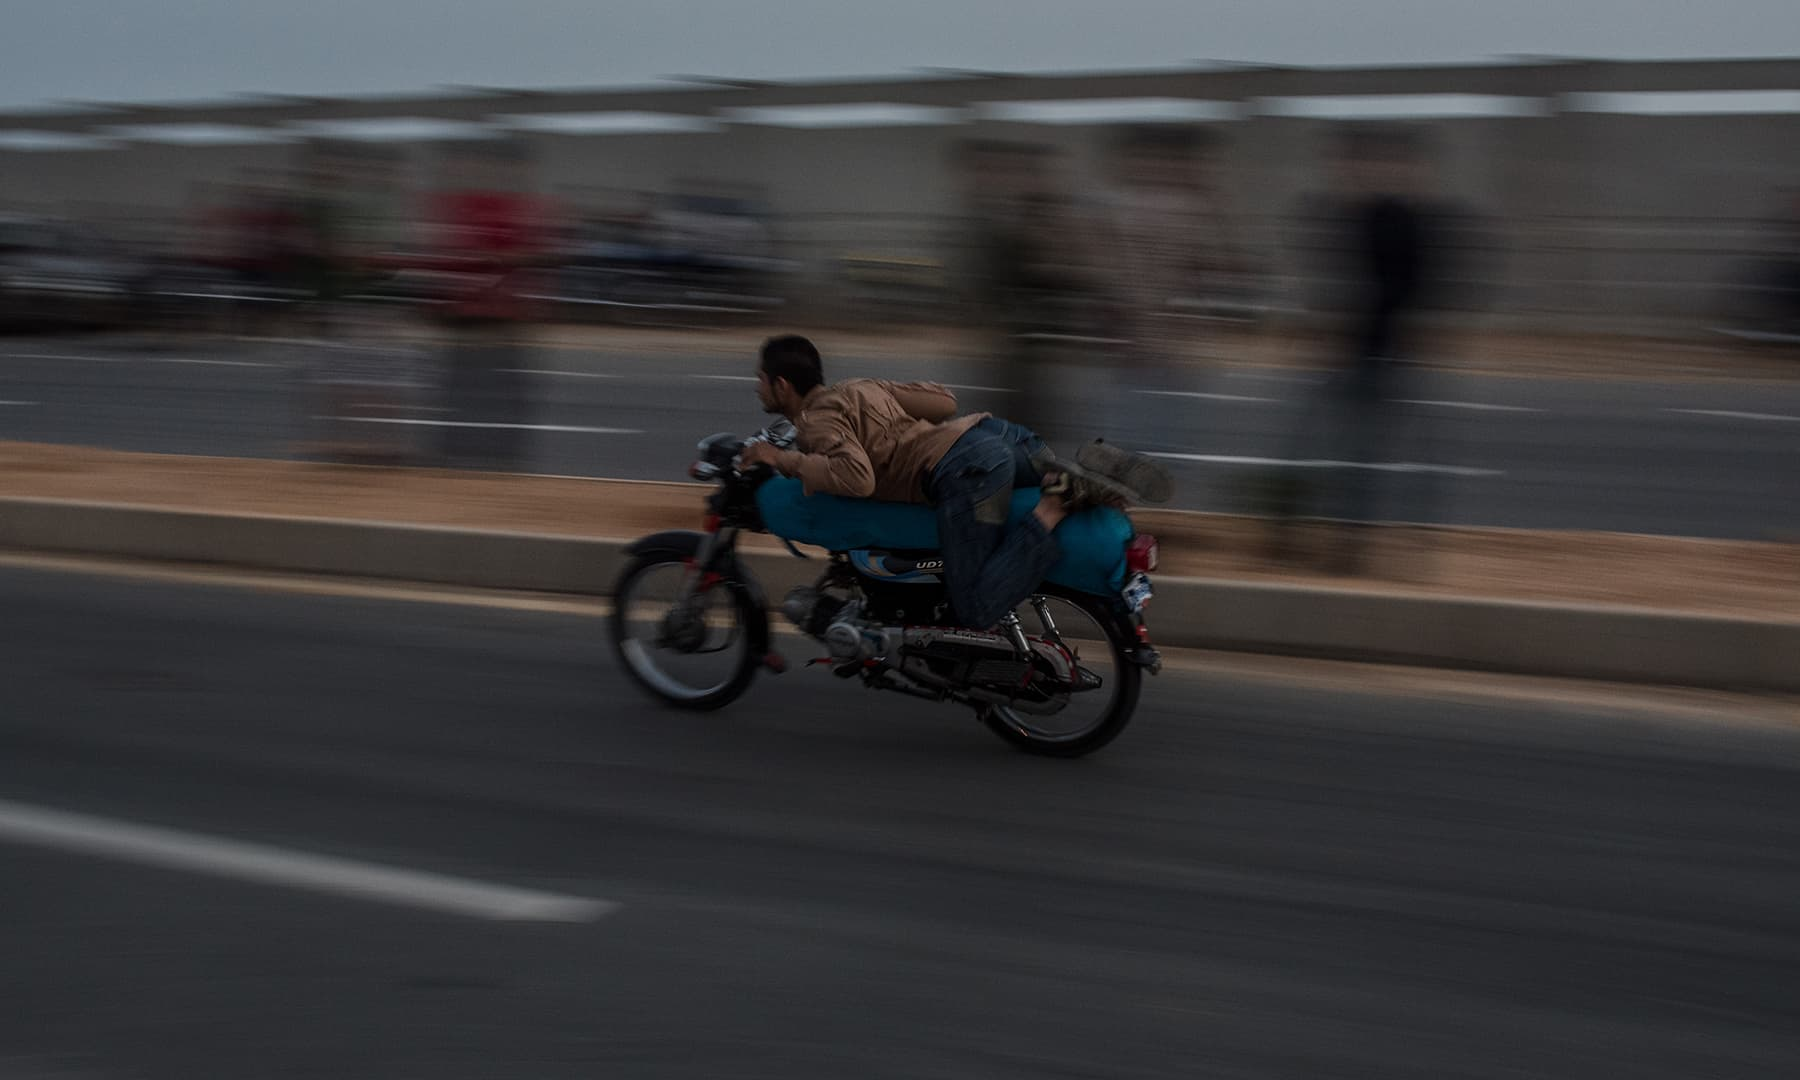 A biker lies flat on his motorcycle as he glides past spectators